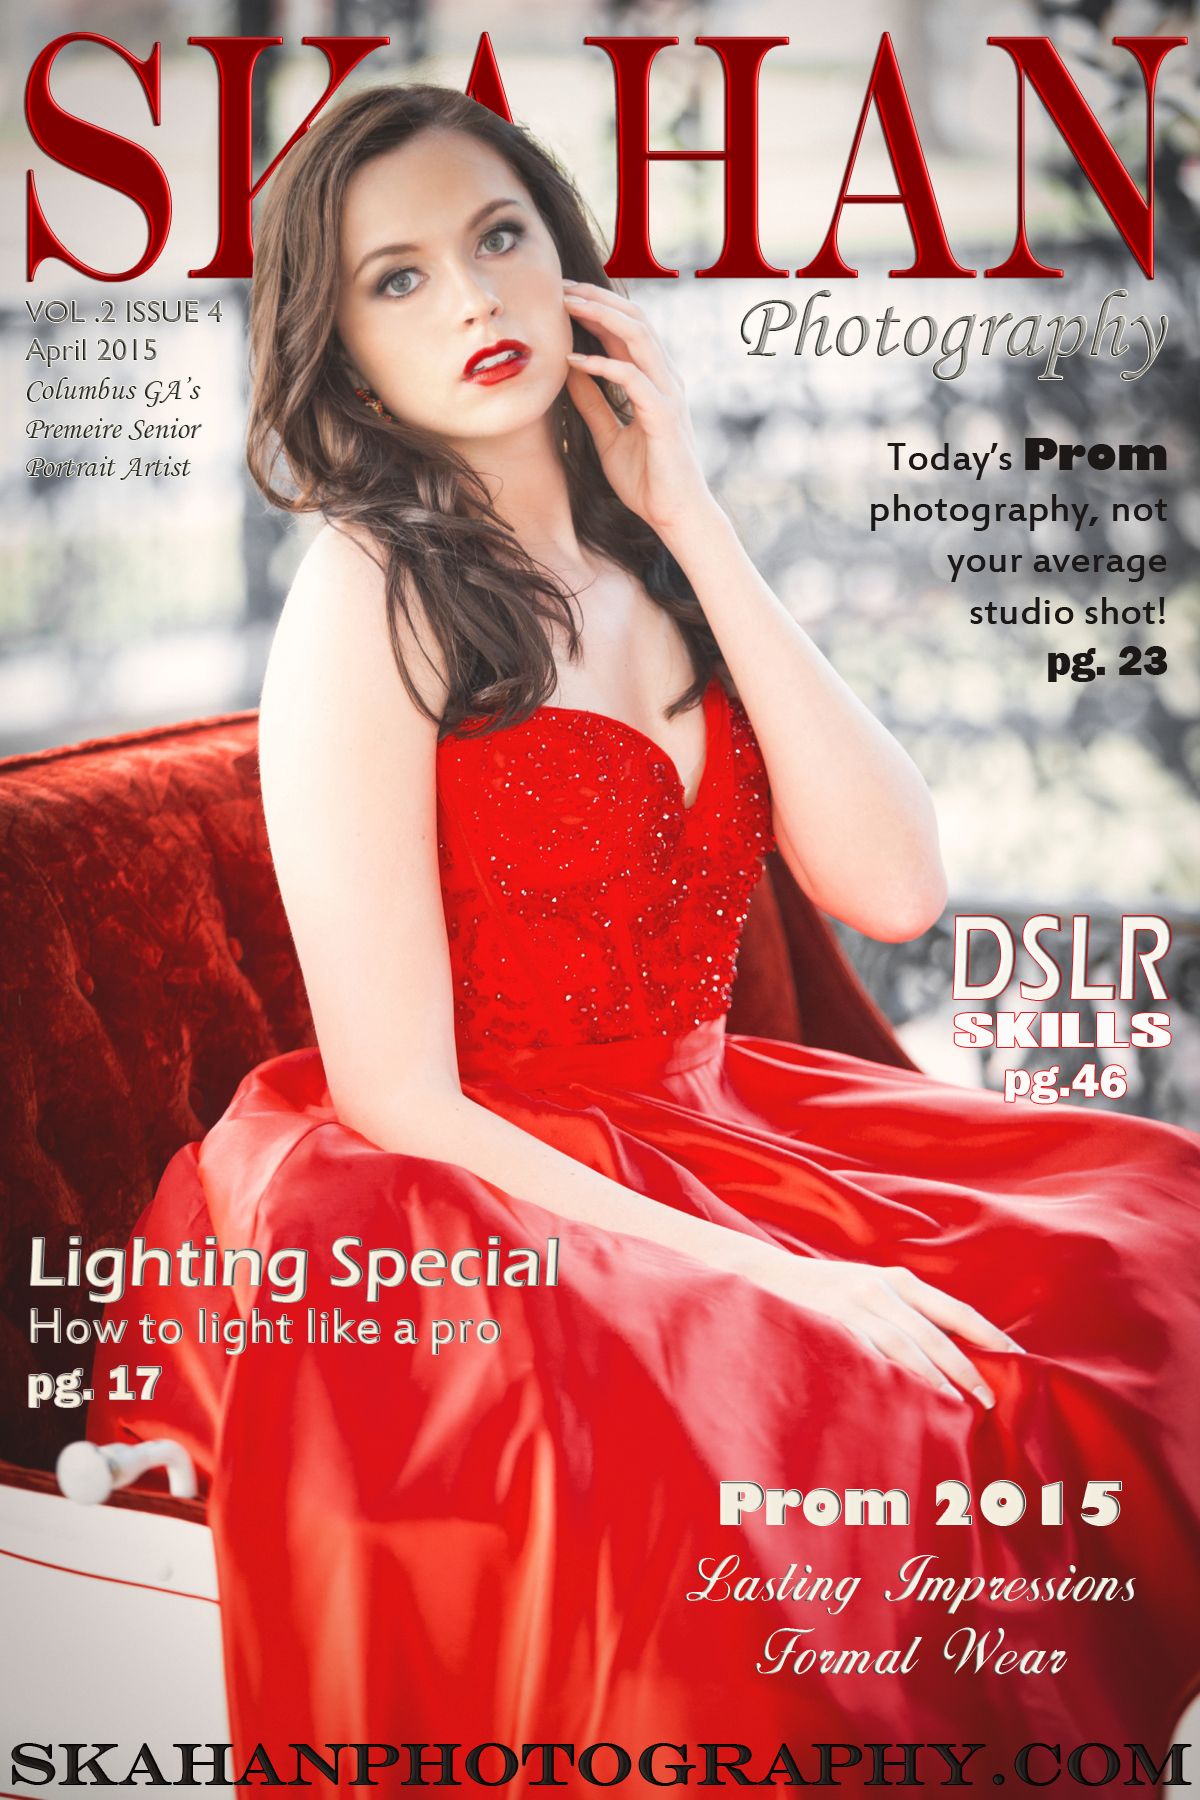 Volume 2 Issue 4 April 2015